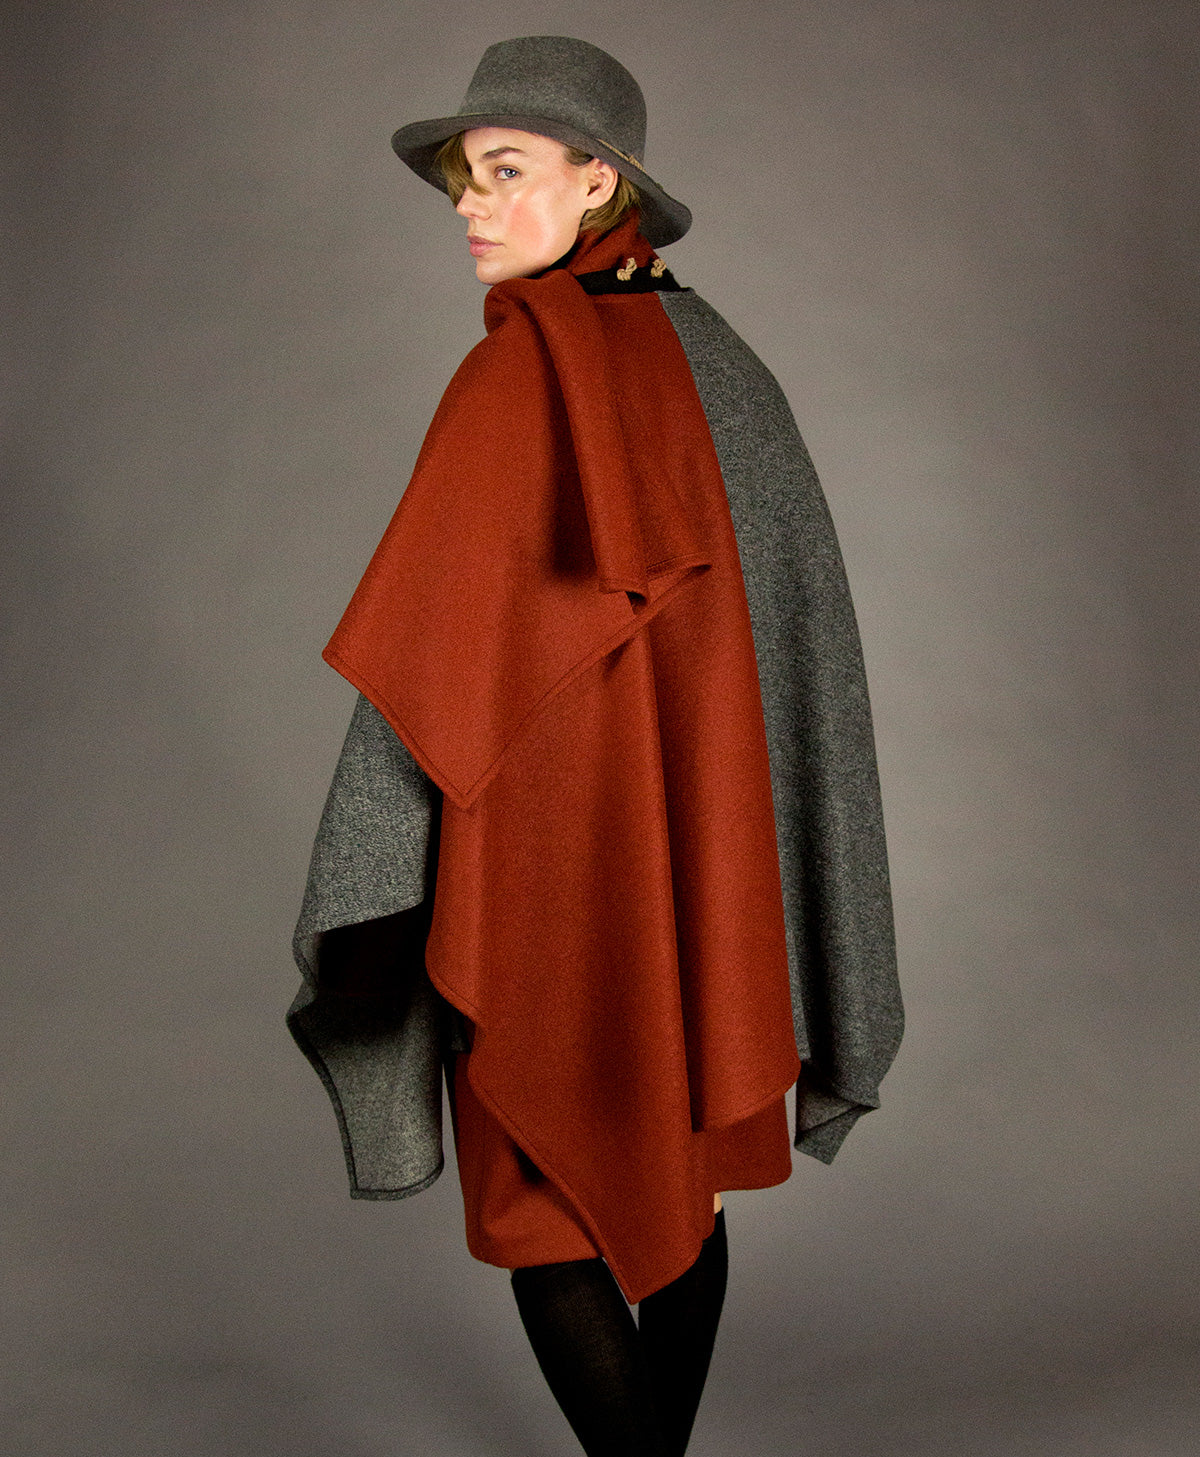 cloak 1 charcoal melange/rust color-block